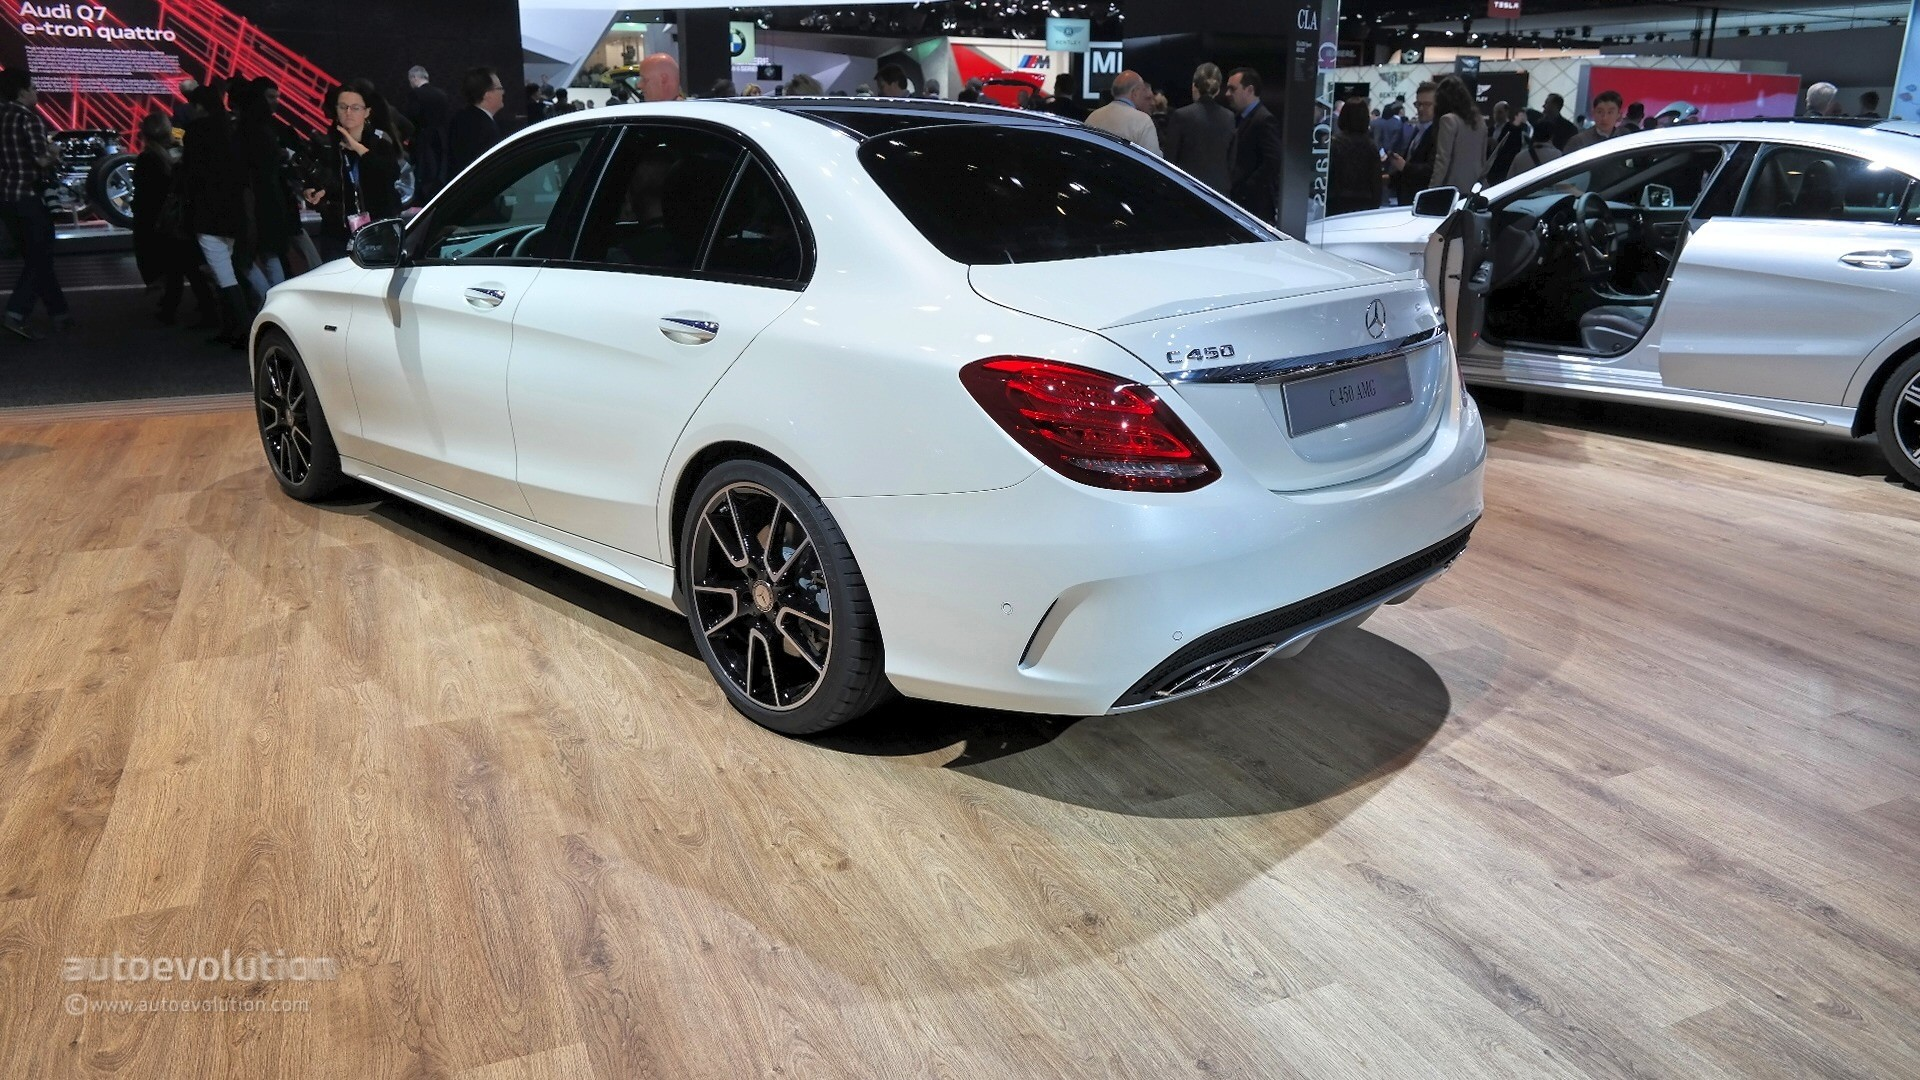 2016 mercedes c450 amg 4matic sedan finally arrives in the for Mercedes benz c450 amg